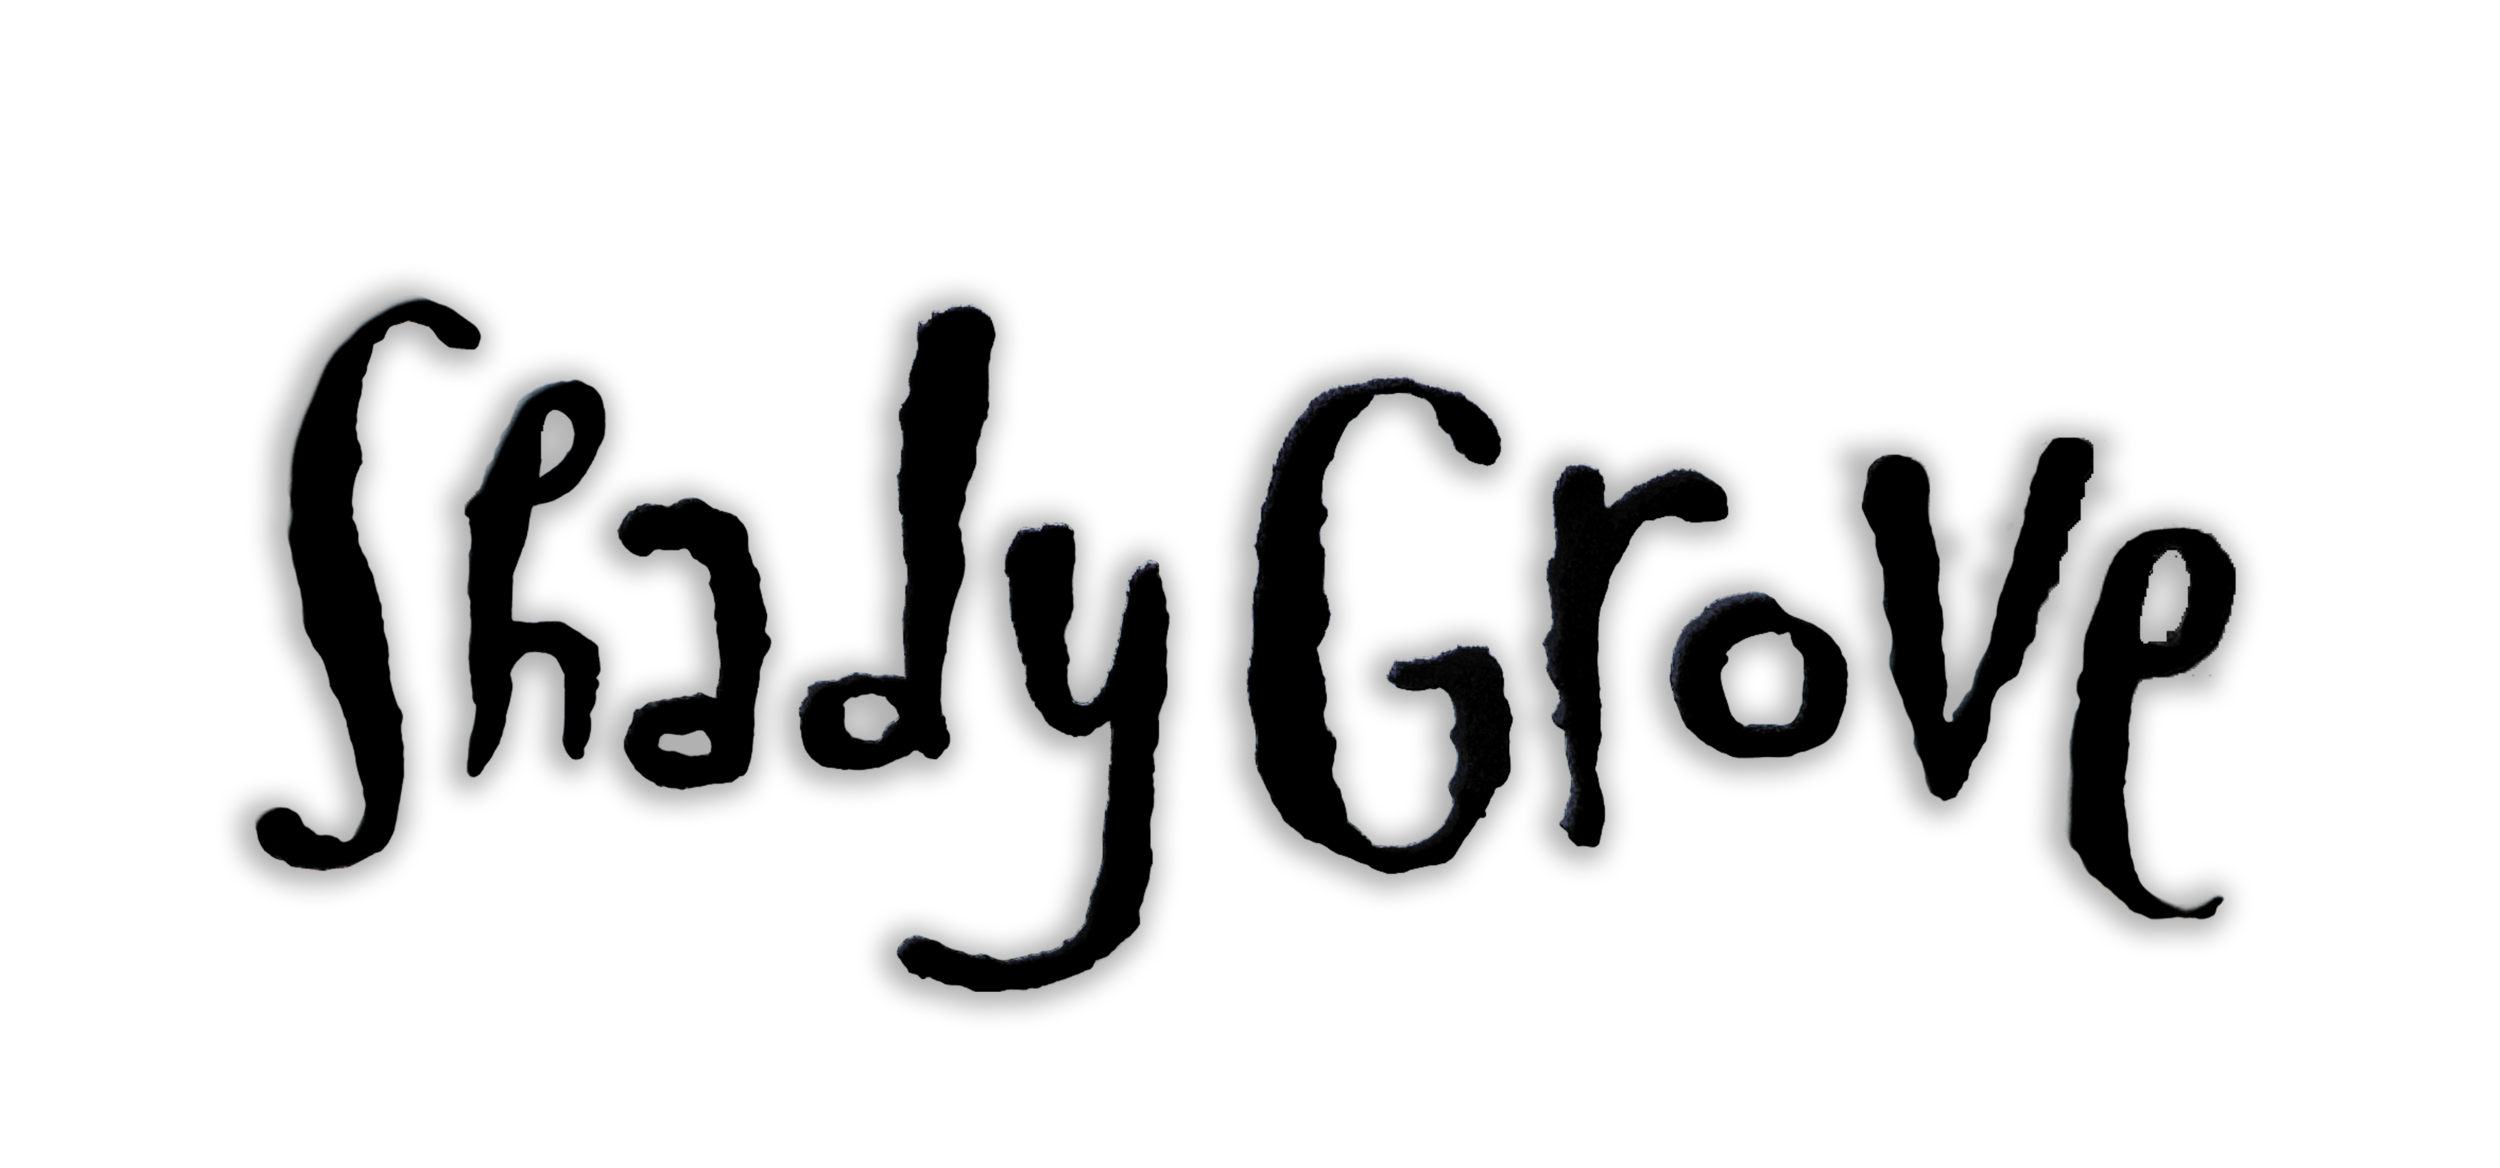 shady_grove_by_philip_black.png